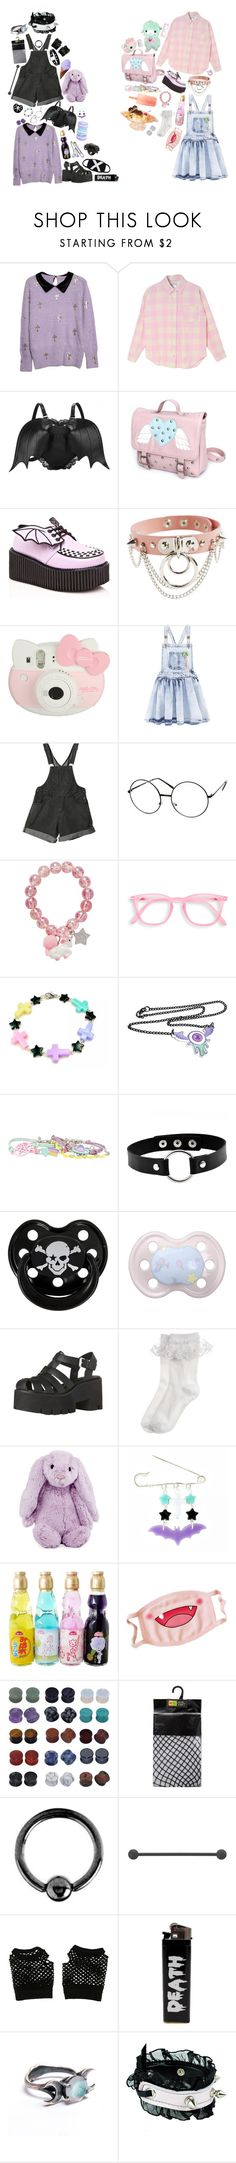 """""""[ little buddies ]"""" by spxceboi ❤ liked on Polyvore featuring Chicnova Fashion, Demonia, Hello Kitty, Billieblush, Hot Topic, Rock Star Baby, Monsoon, Jellycat, Urbiana and Dsquared2"""